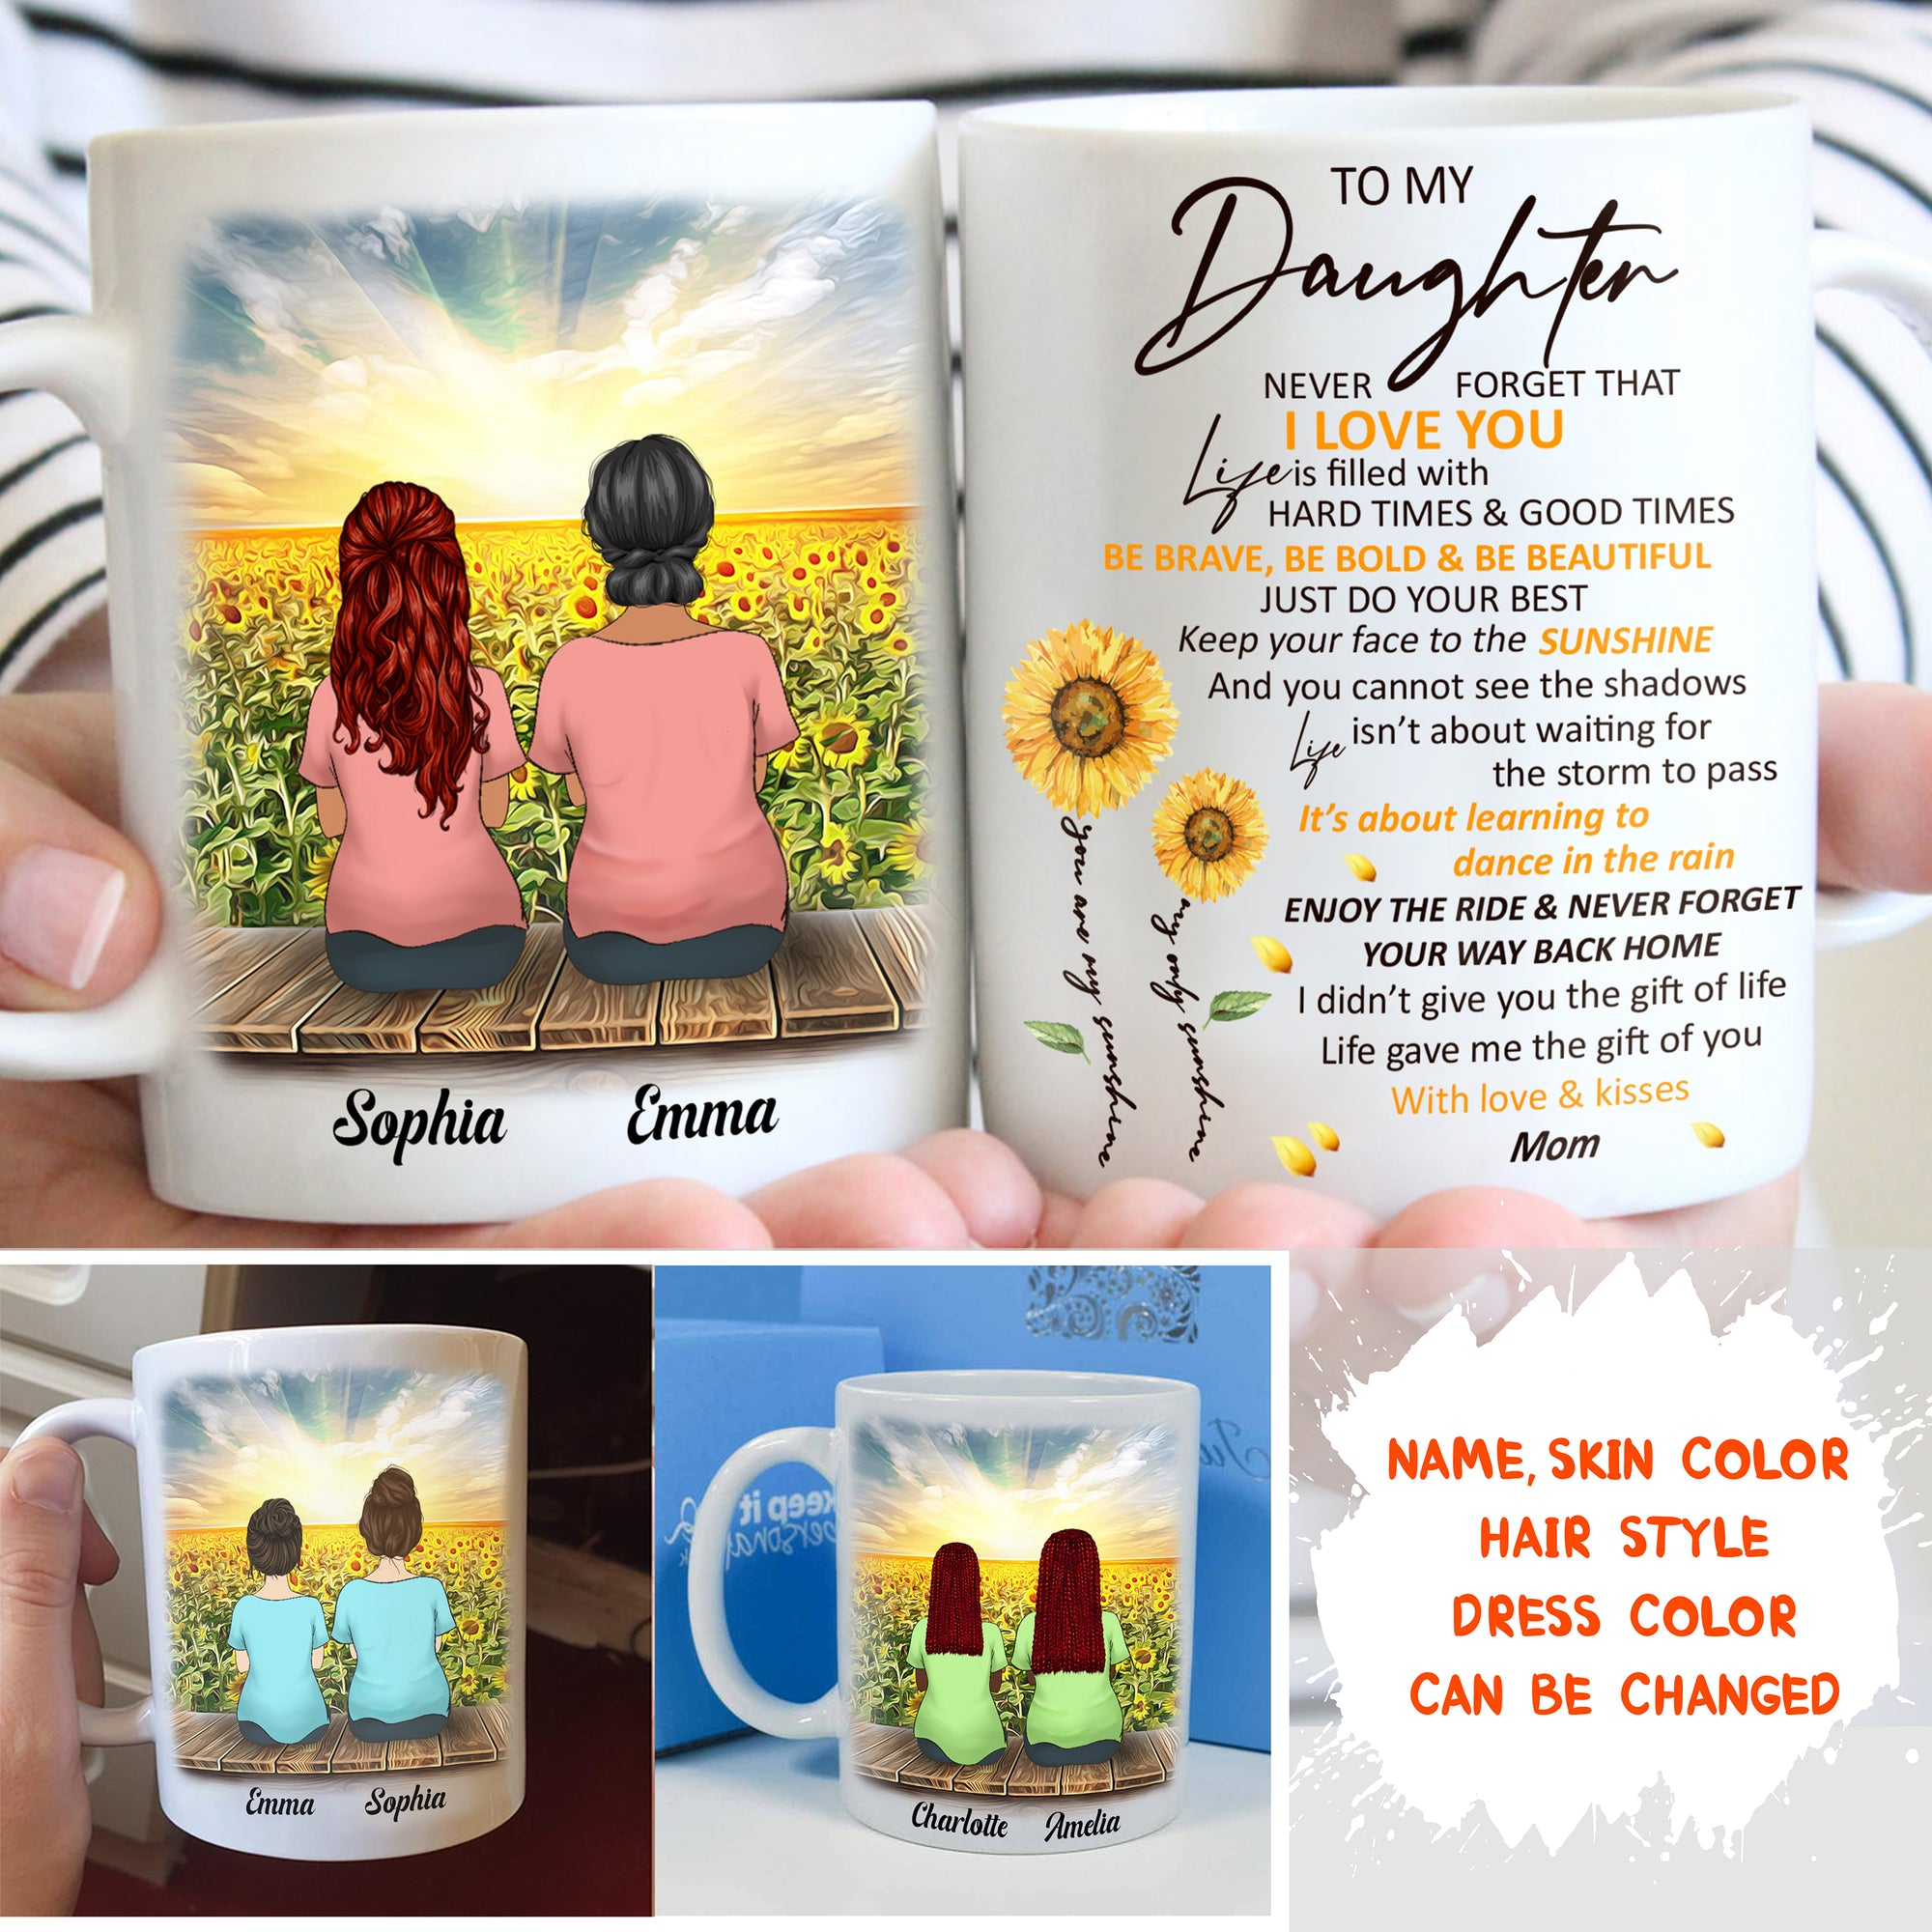 Personalized Custom Coffee Mug – Never Forget How Much I love You - Gift For Daughter From Mom, Sunflower Mug, Birthday Gifts - 6488